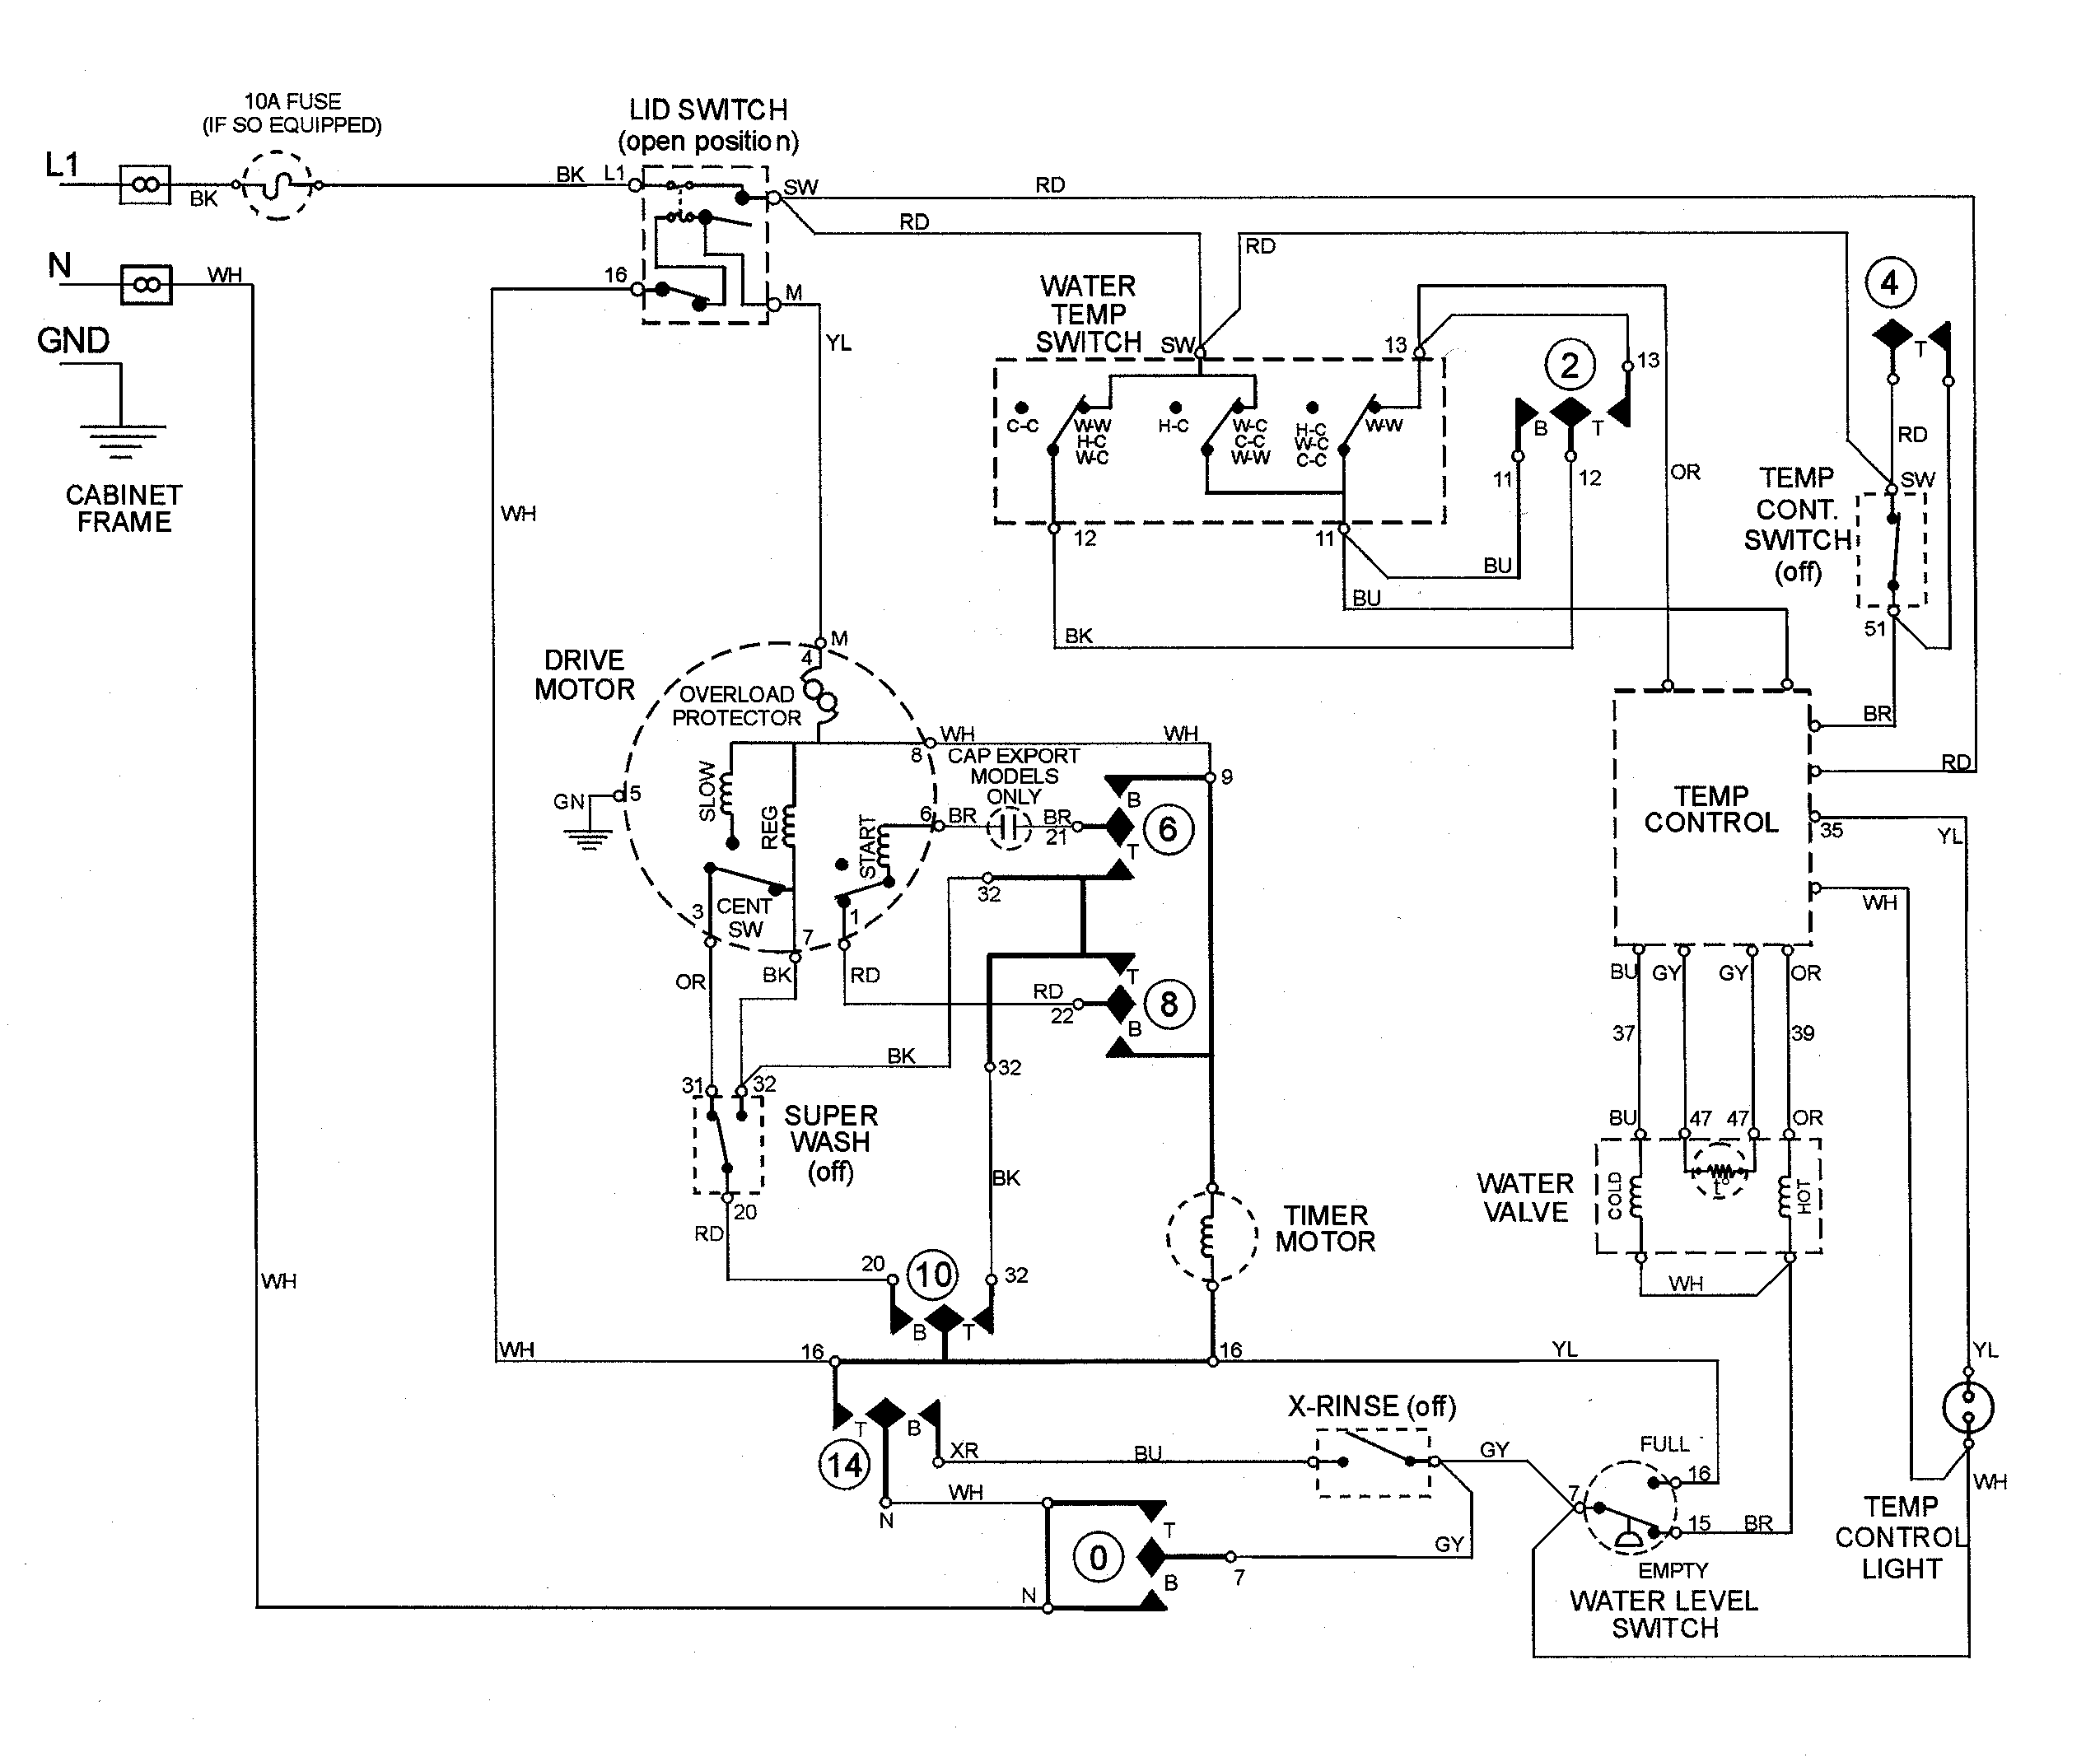 ge ev1 wire diagram wiring diagram advance ge ev 1 wire diagram [ 2550 x 2140 Pixel ]